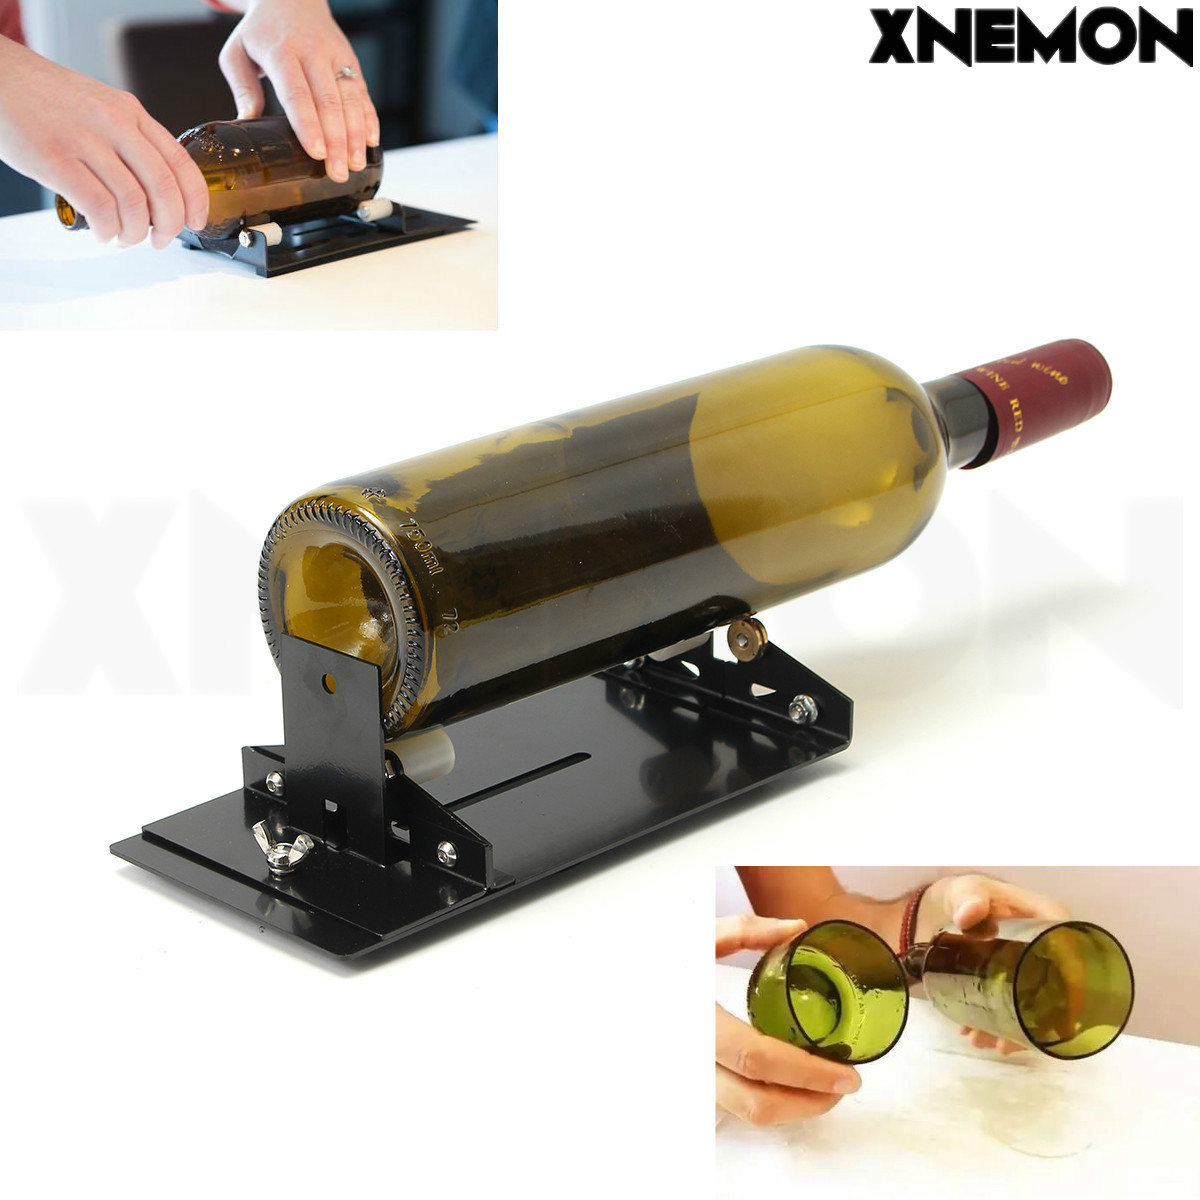 XNEMON Glass Bottle Cutter Machine for Wine Beer Glass Bottles Bottle Cutting Tool Cutters with Plastic Pulley, YG8 Cutter Wheel oil feed pistol grip stained glass cutter cutting tool